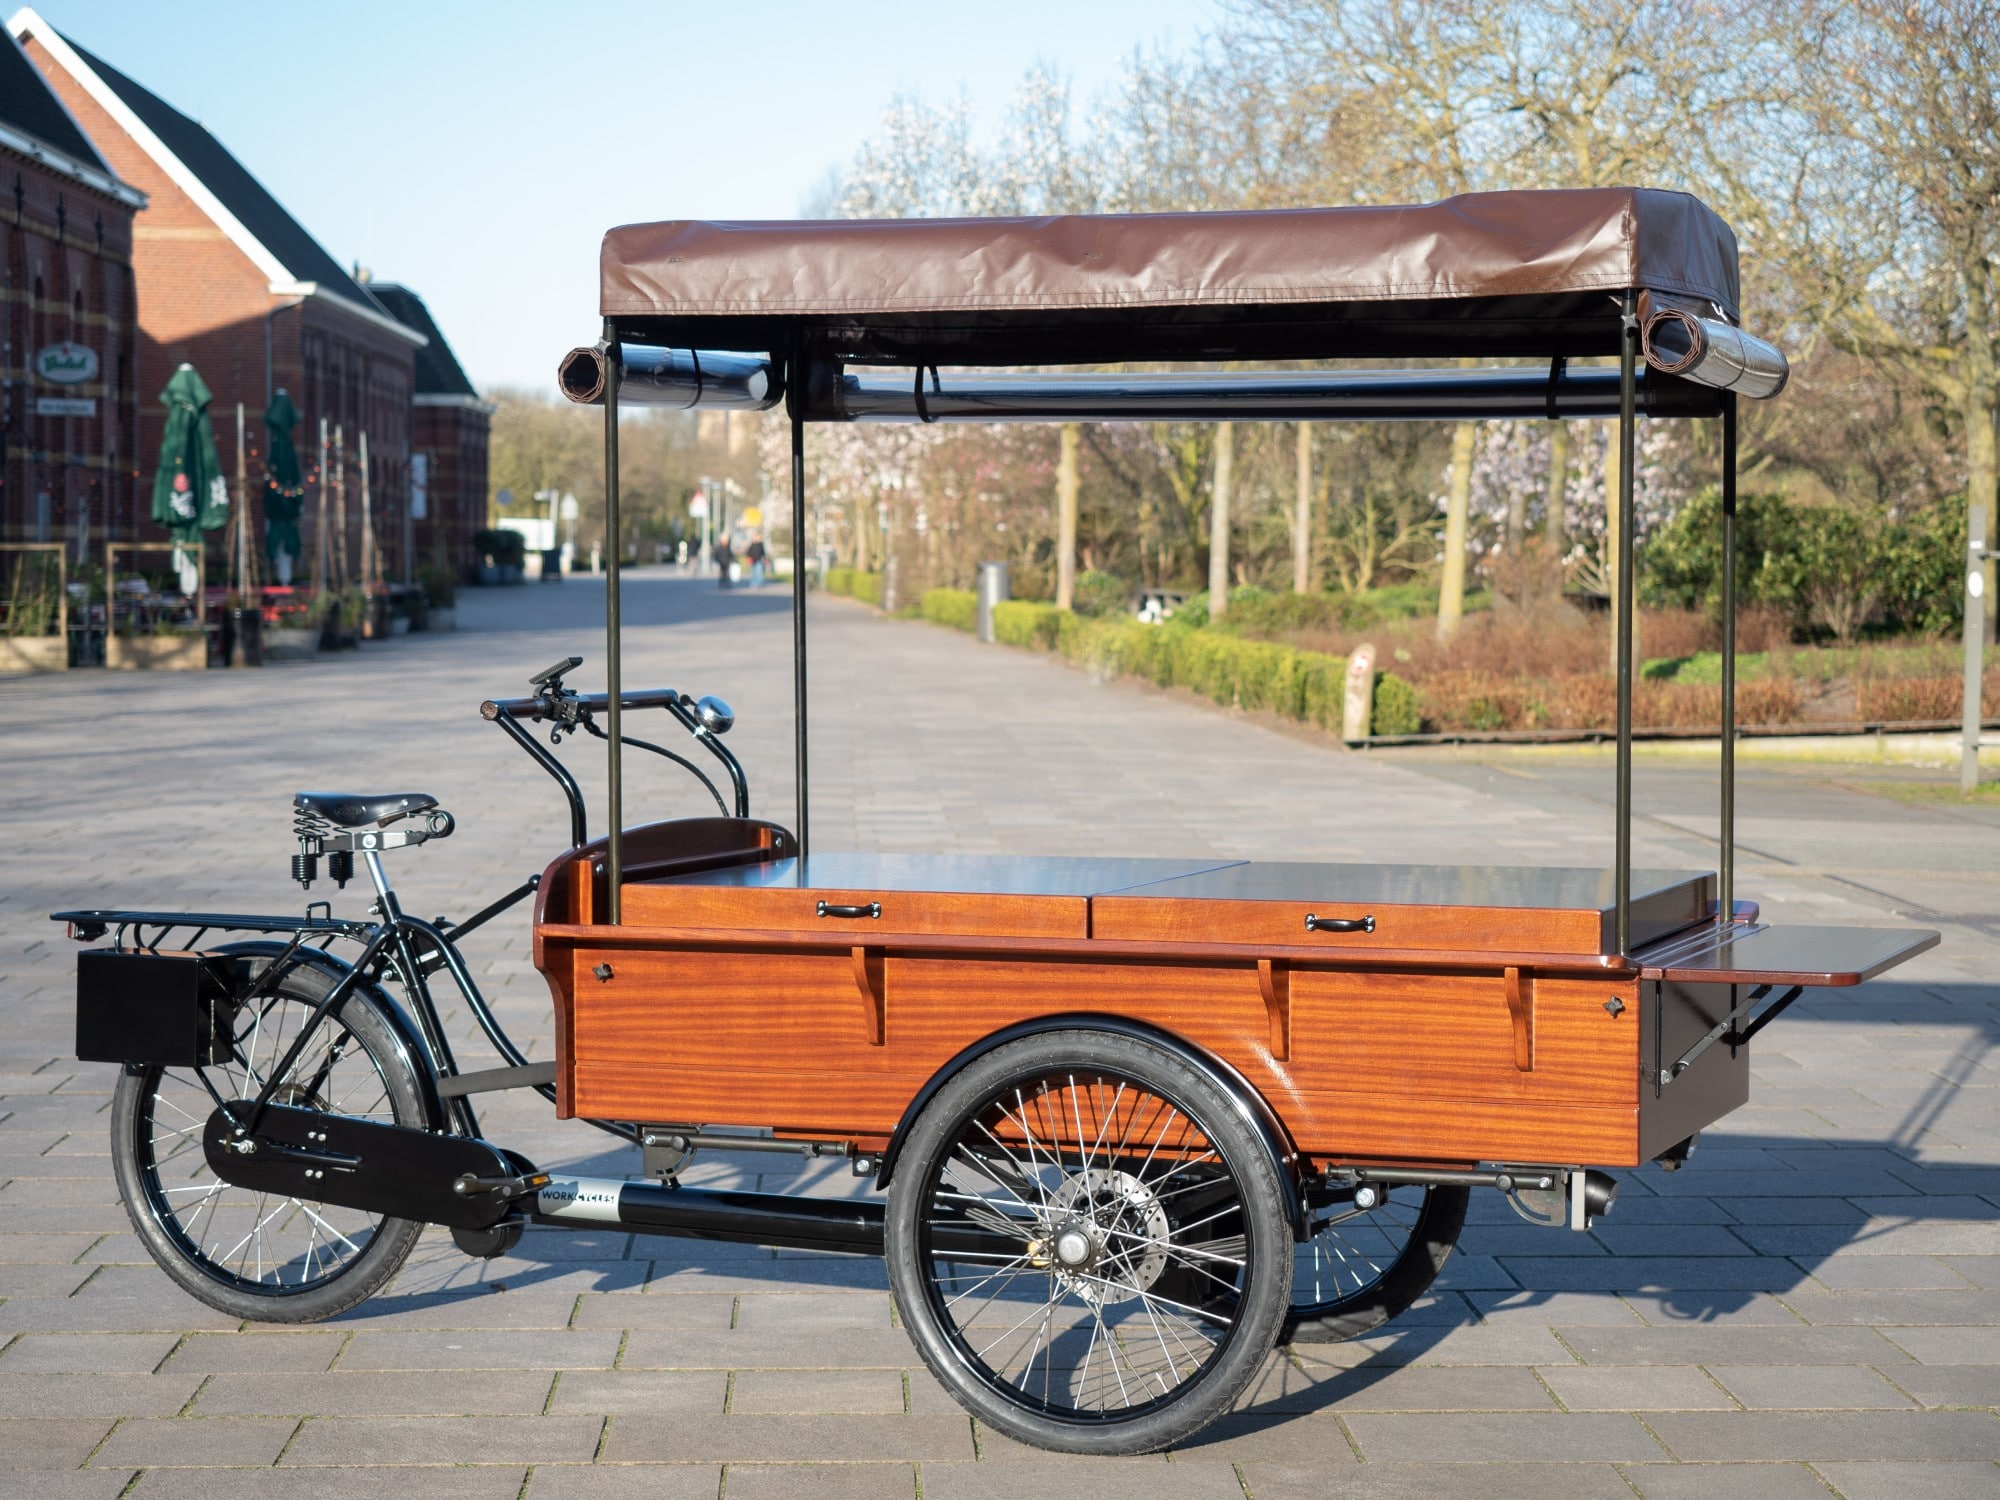 Please note that these trikes are rather big and heavy thus only suitable for essentially flat terrain.